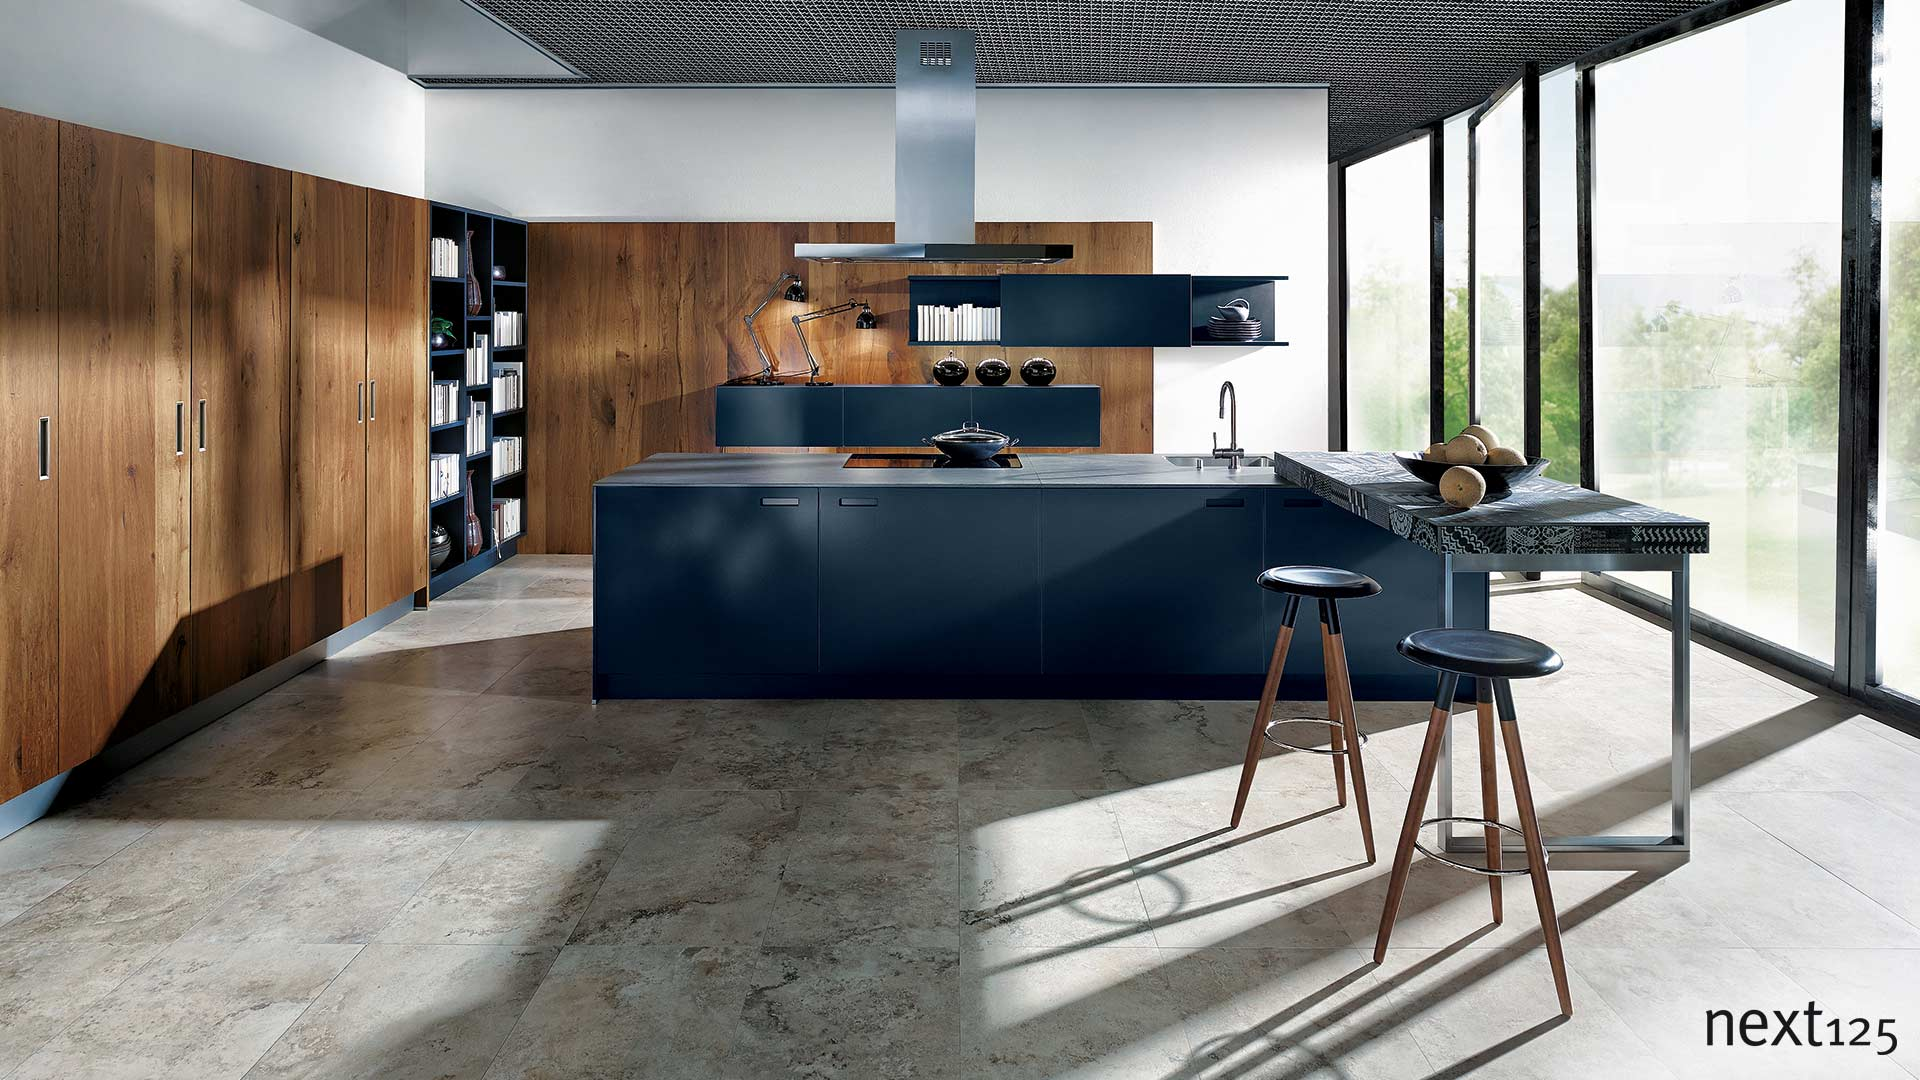 kombi dampfgarer perfect backofen dampfgarer kombi neu gorenje kombi backofen und dampfgarer. Black Bedroom Furniture Sets. Home Design Ideas